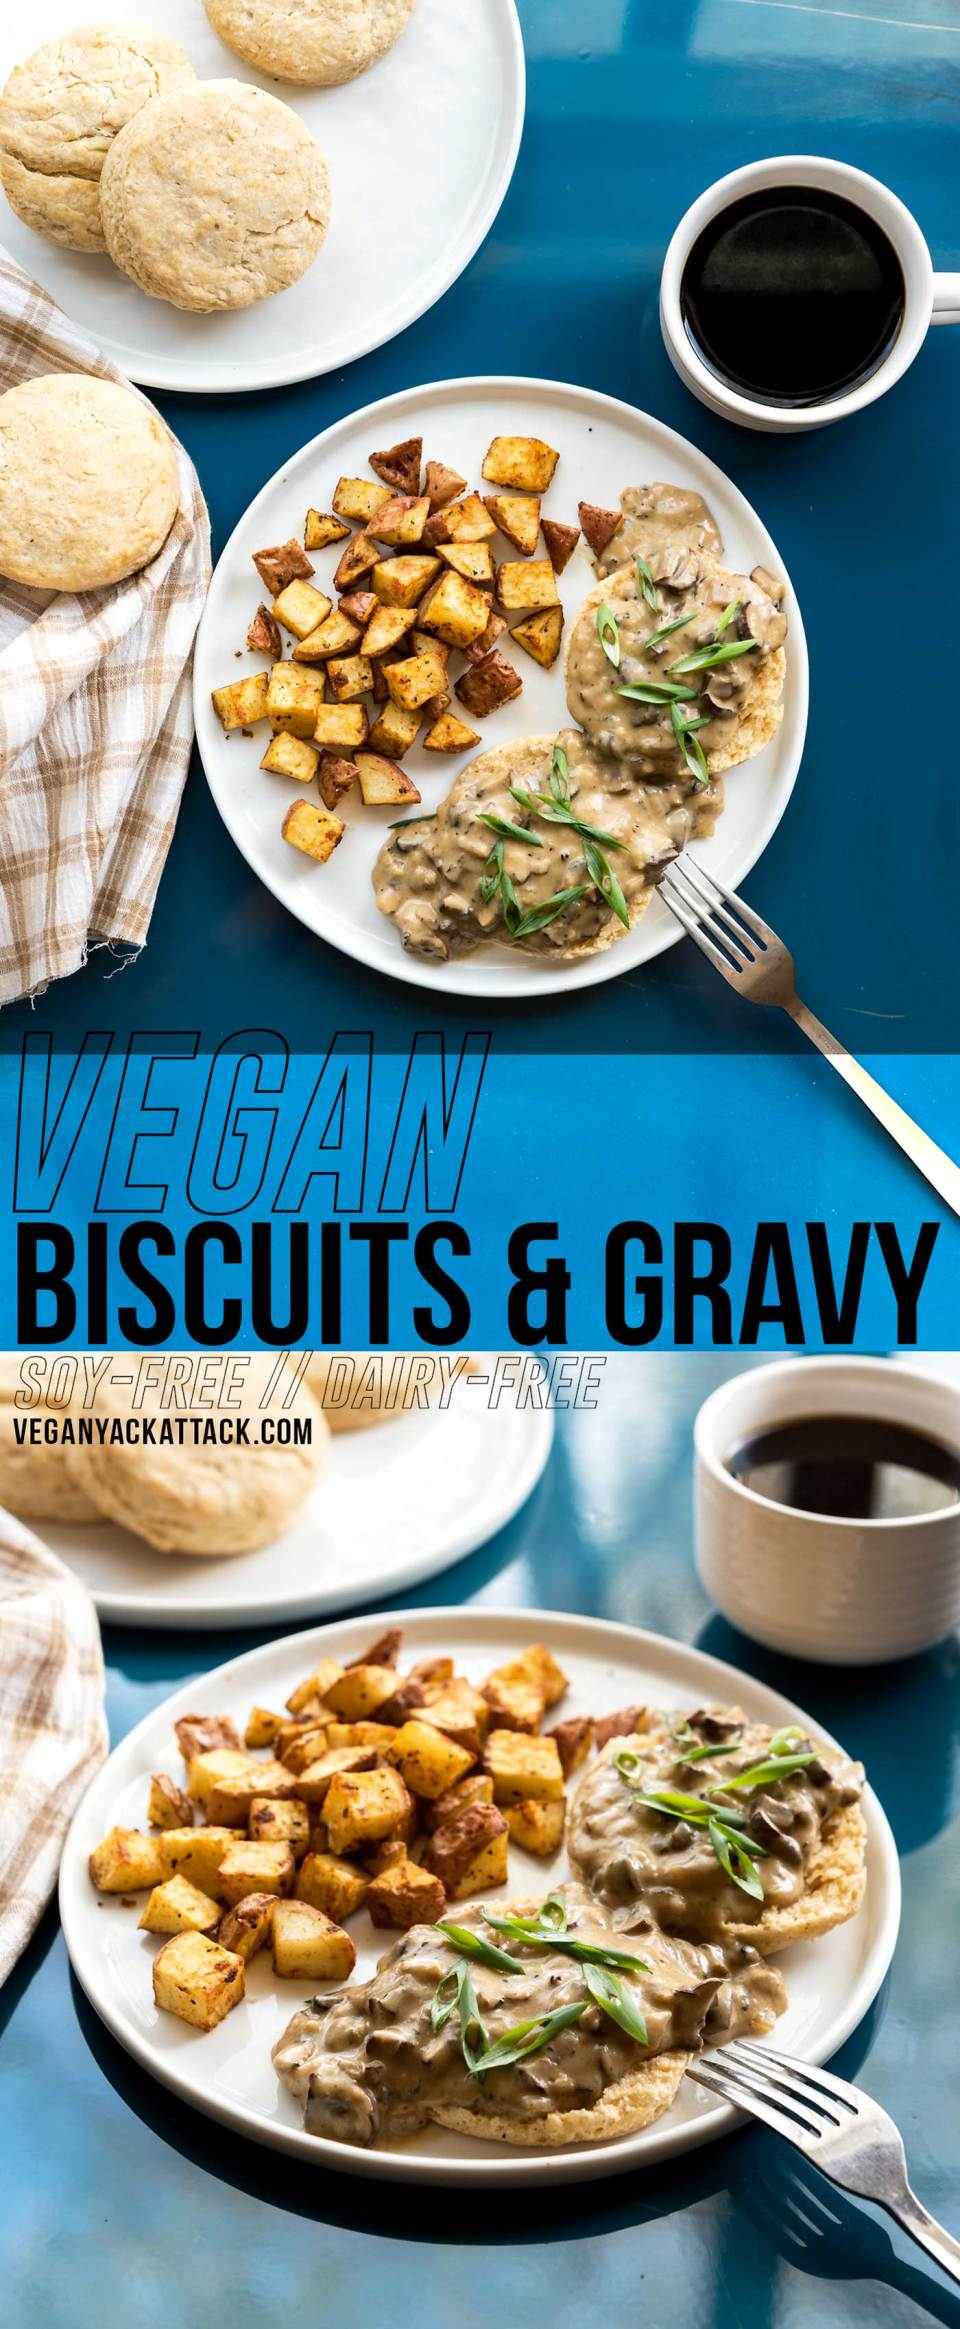 Rich, comforting gravy, on top of fluffy, flaky, buttery vegan biscuits? You got it! This recipe for vegan biscuits and gravy will become a staple in your brunch menu, for many mornings to come. #vegan #brunch #veganyackattack